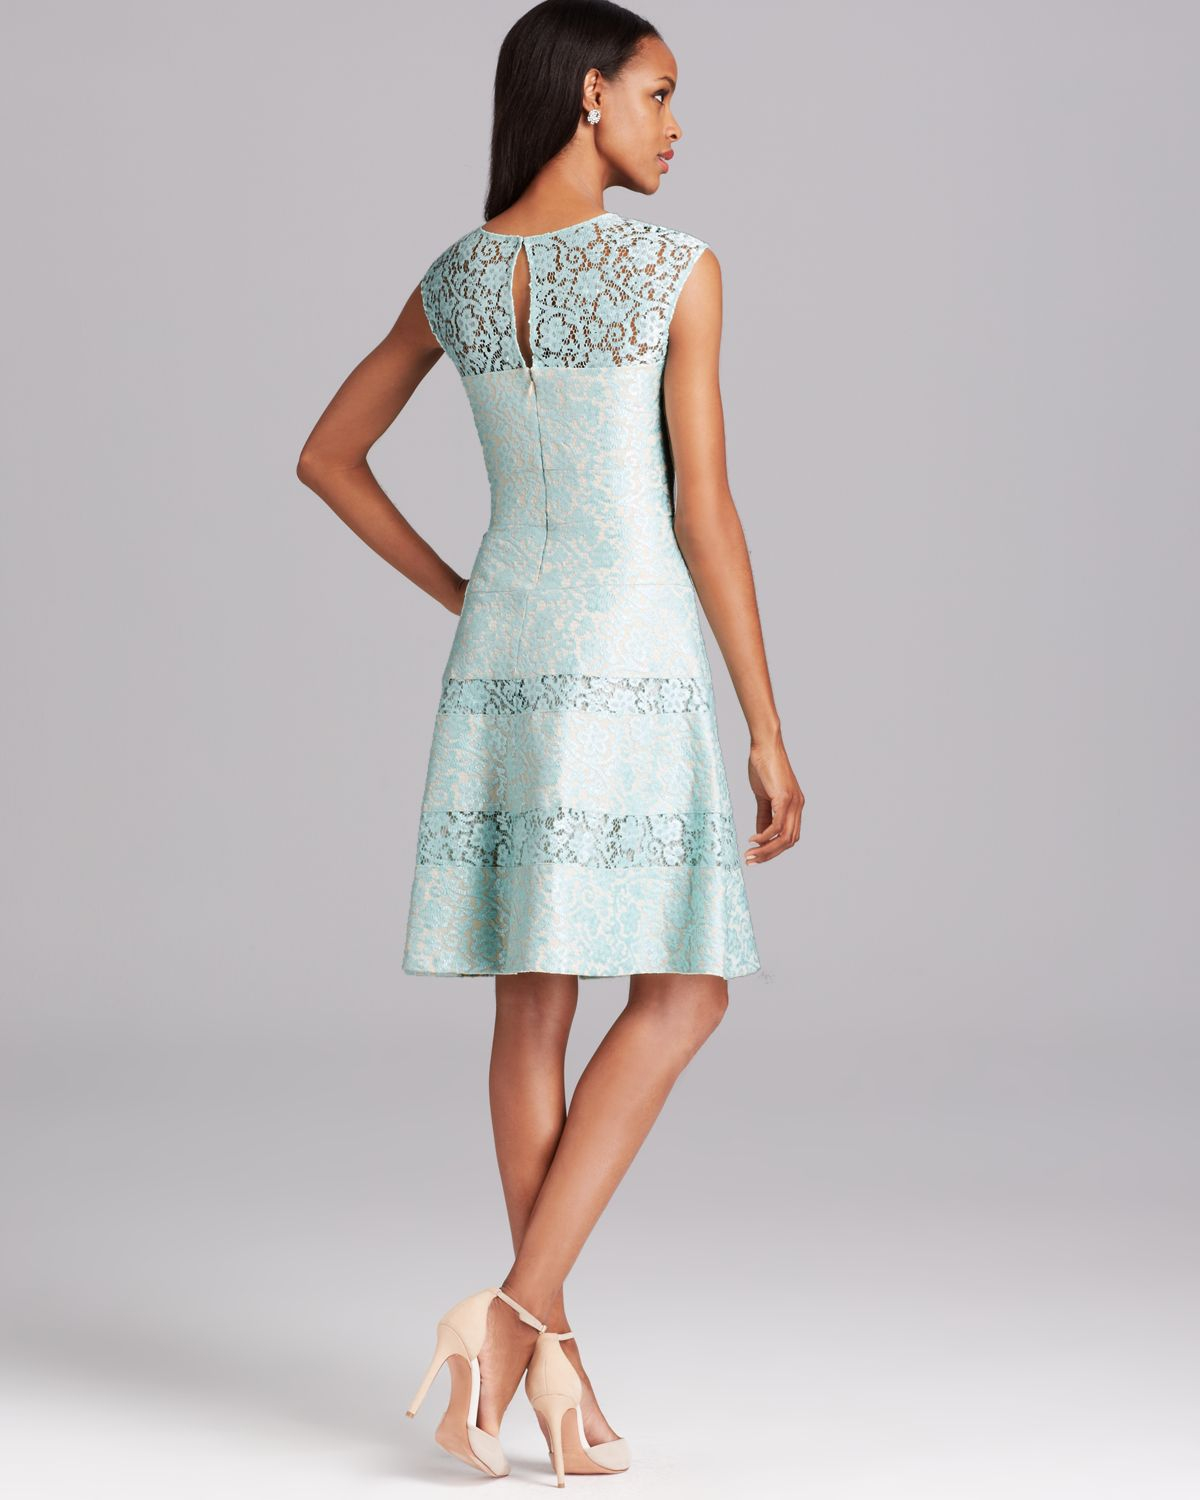 Lyst - Kay Unger Dress Bonded Lace in Green